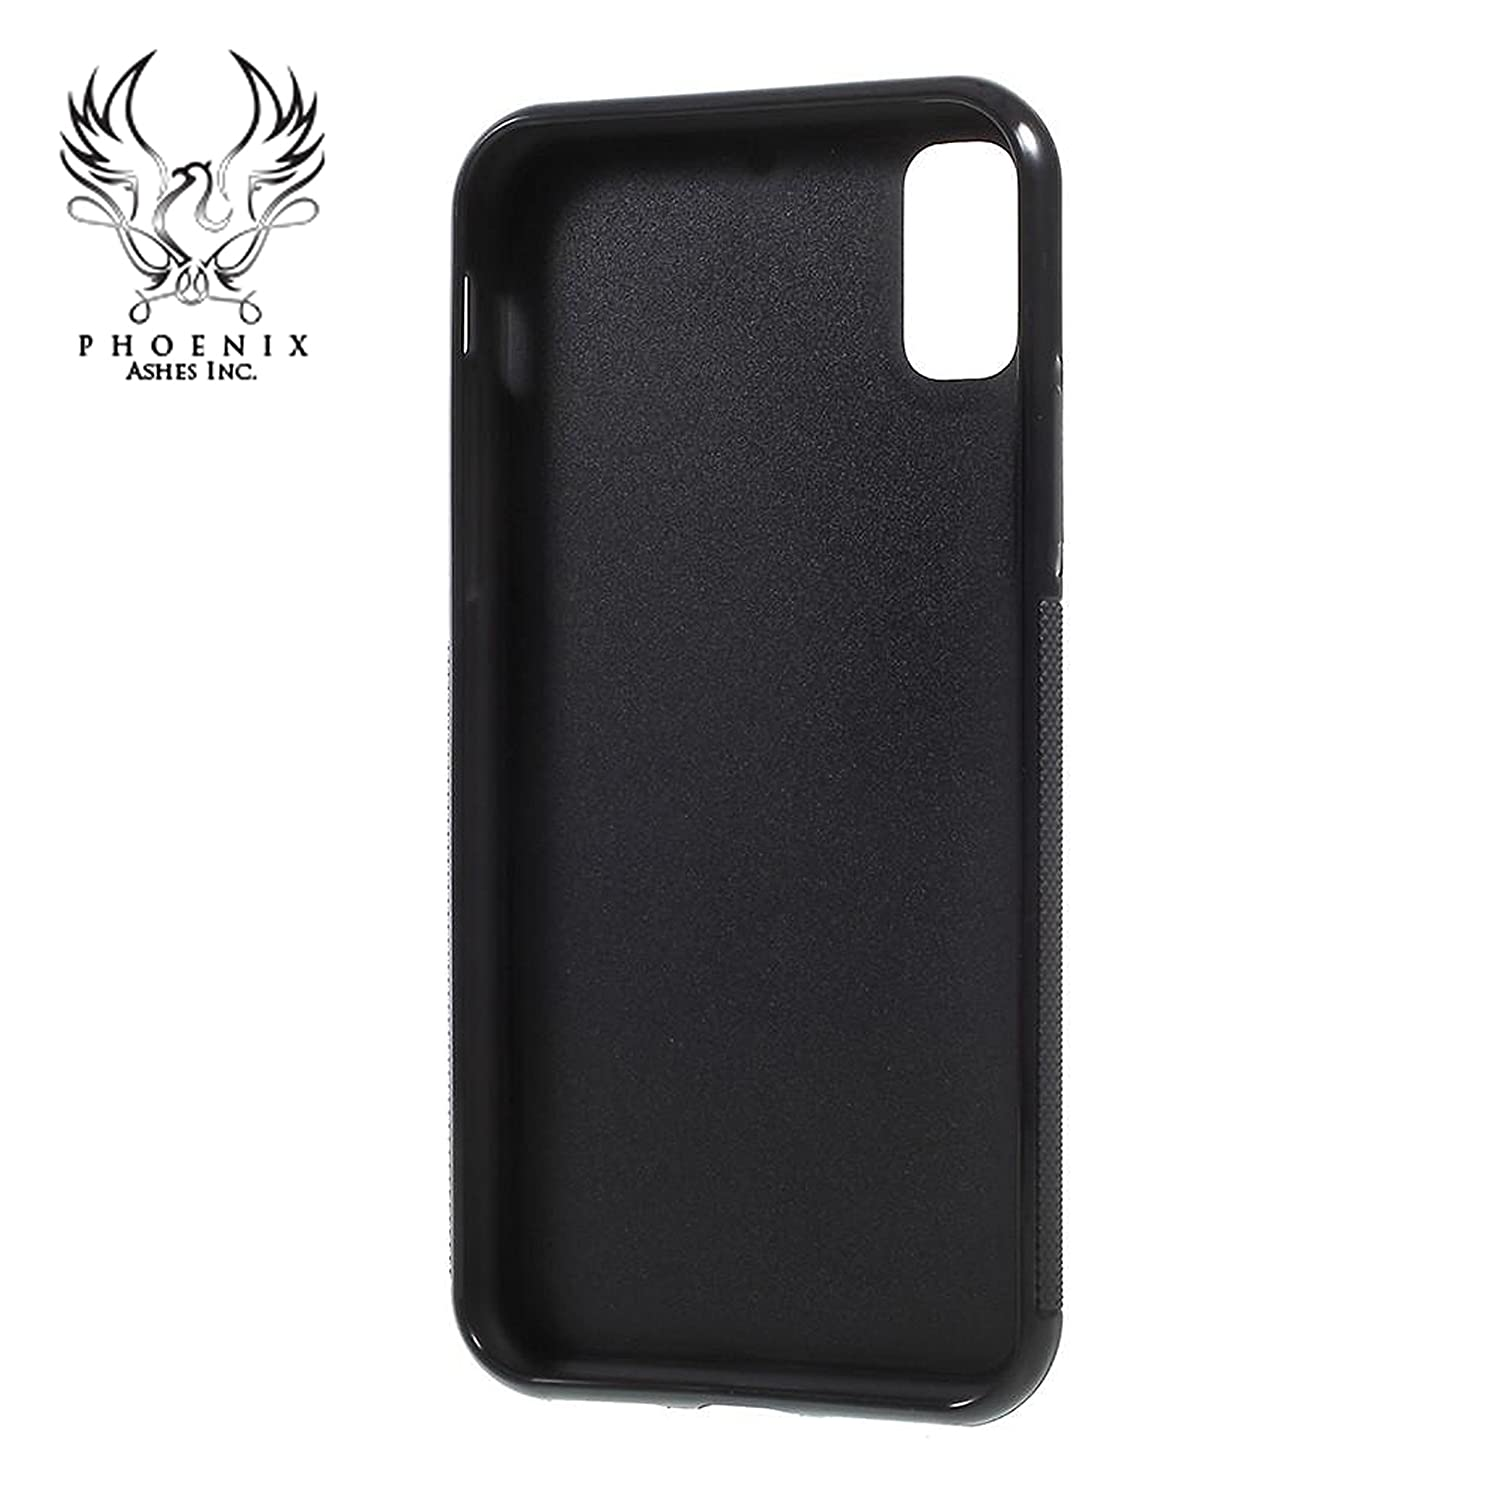 wholesale dealer 9b6c1 184a7 iPhone X Case, Anti-gravity Phone Case For iPhone X Magic Sticks Anti  gravity Nano Suction Technology Protective Cover, Best Seller, Mirrors,  Windows, ...